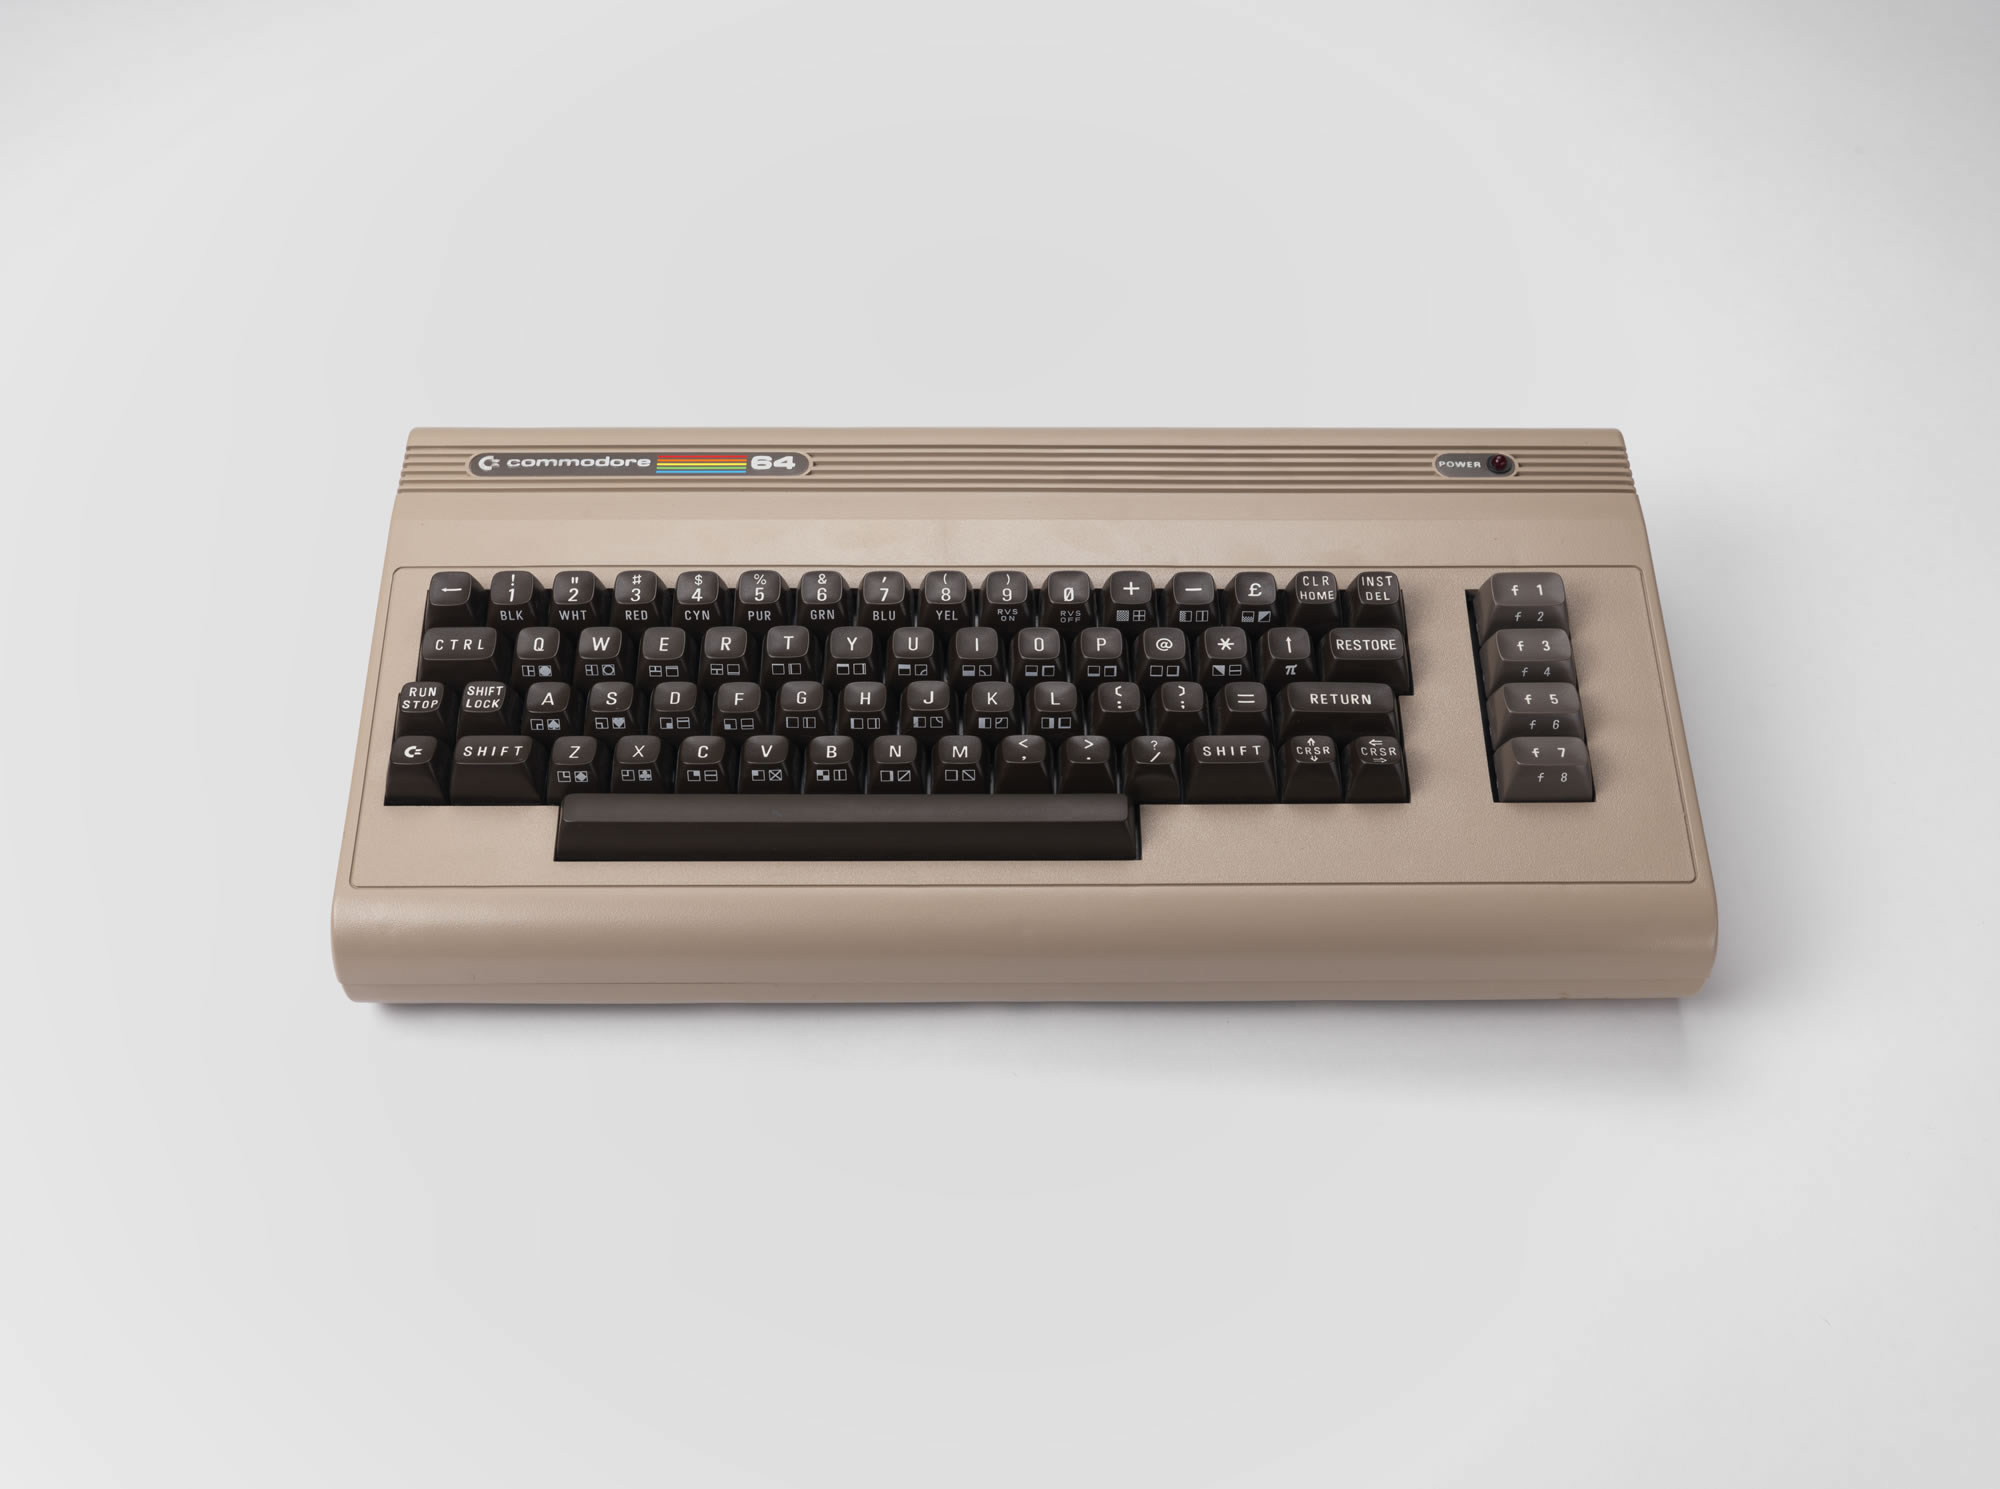 Commodore 64 - The Interface Experience: Bard Graduate Center